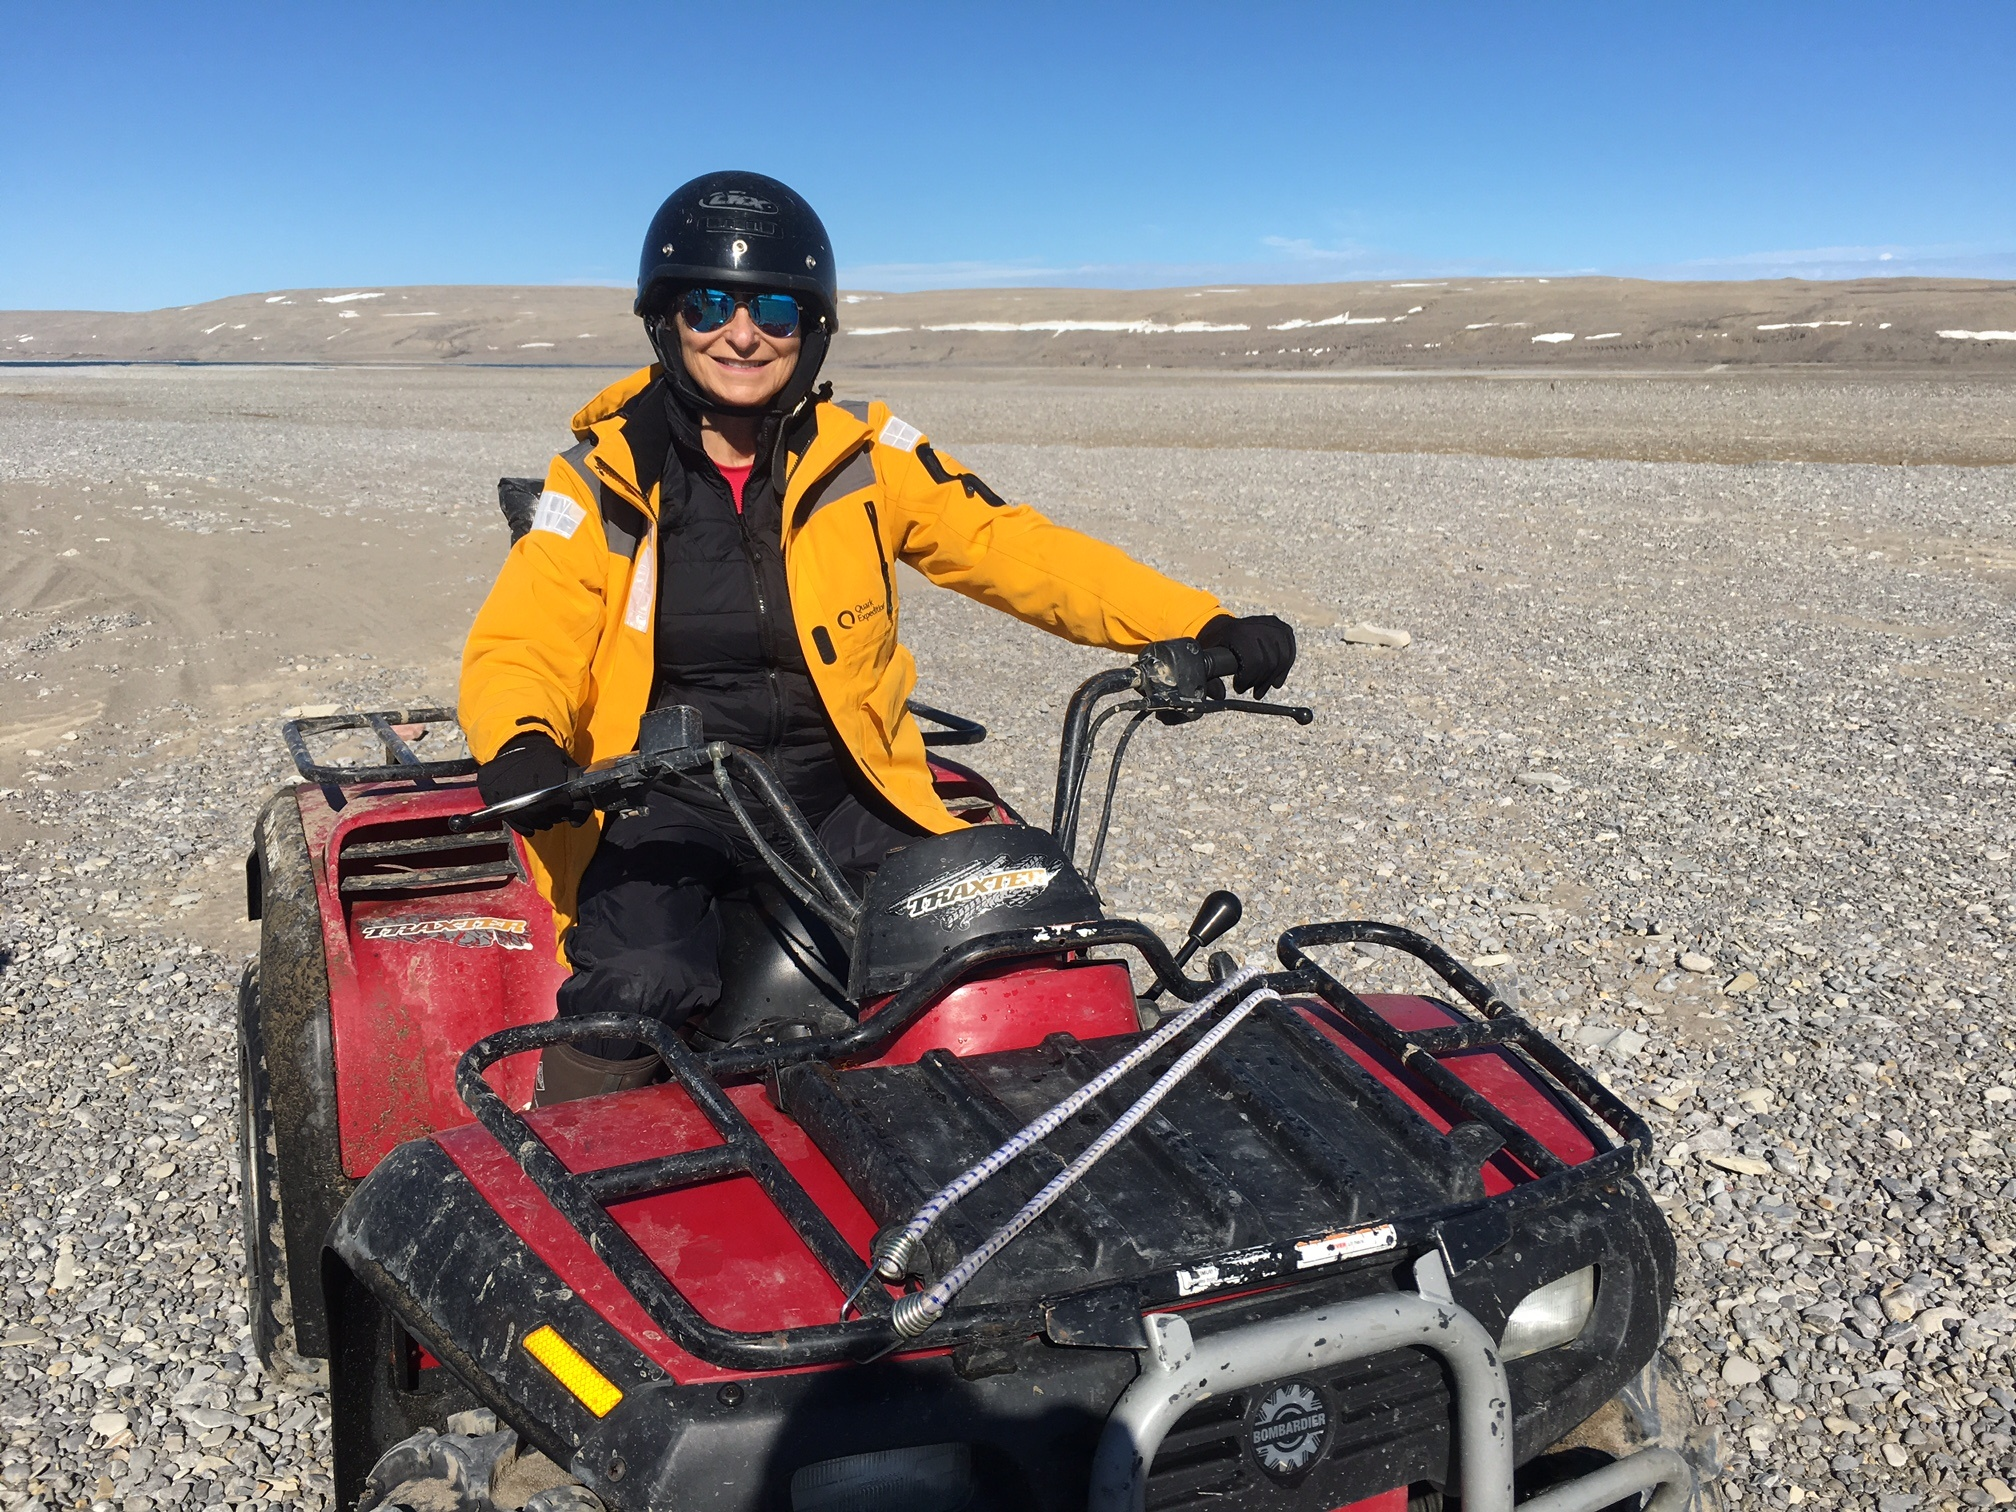 Jeanne Beker gets geared up for an ATV adventure at Arctic Watch Wilderness Lodge